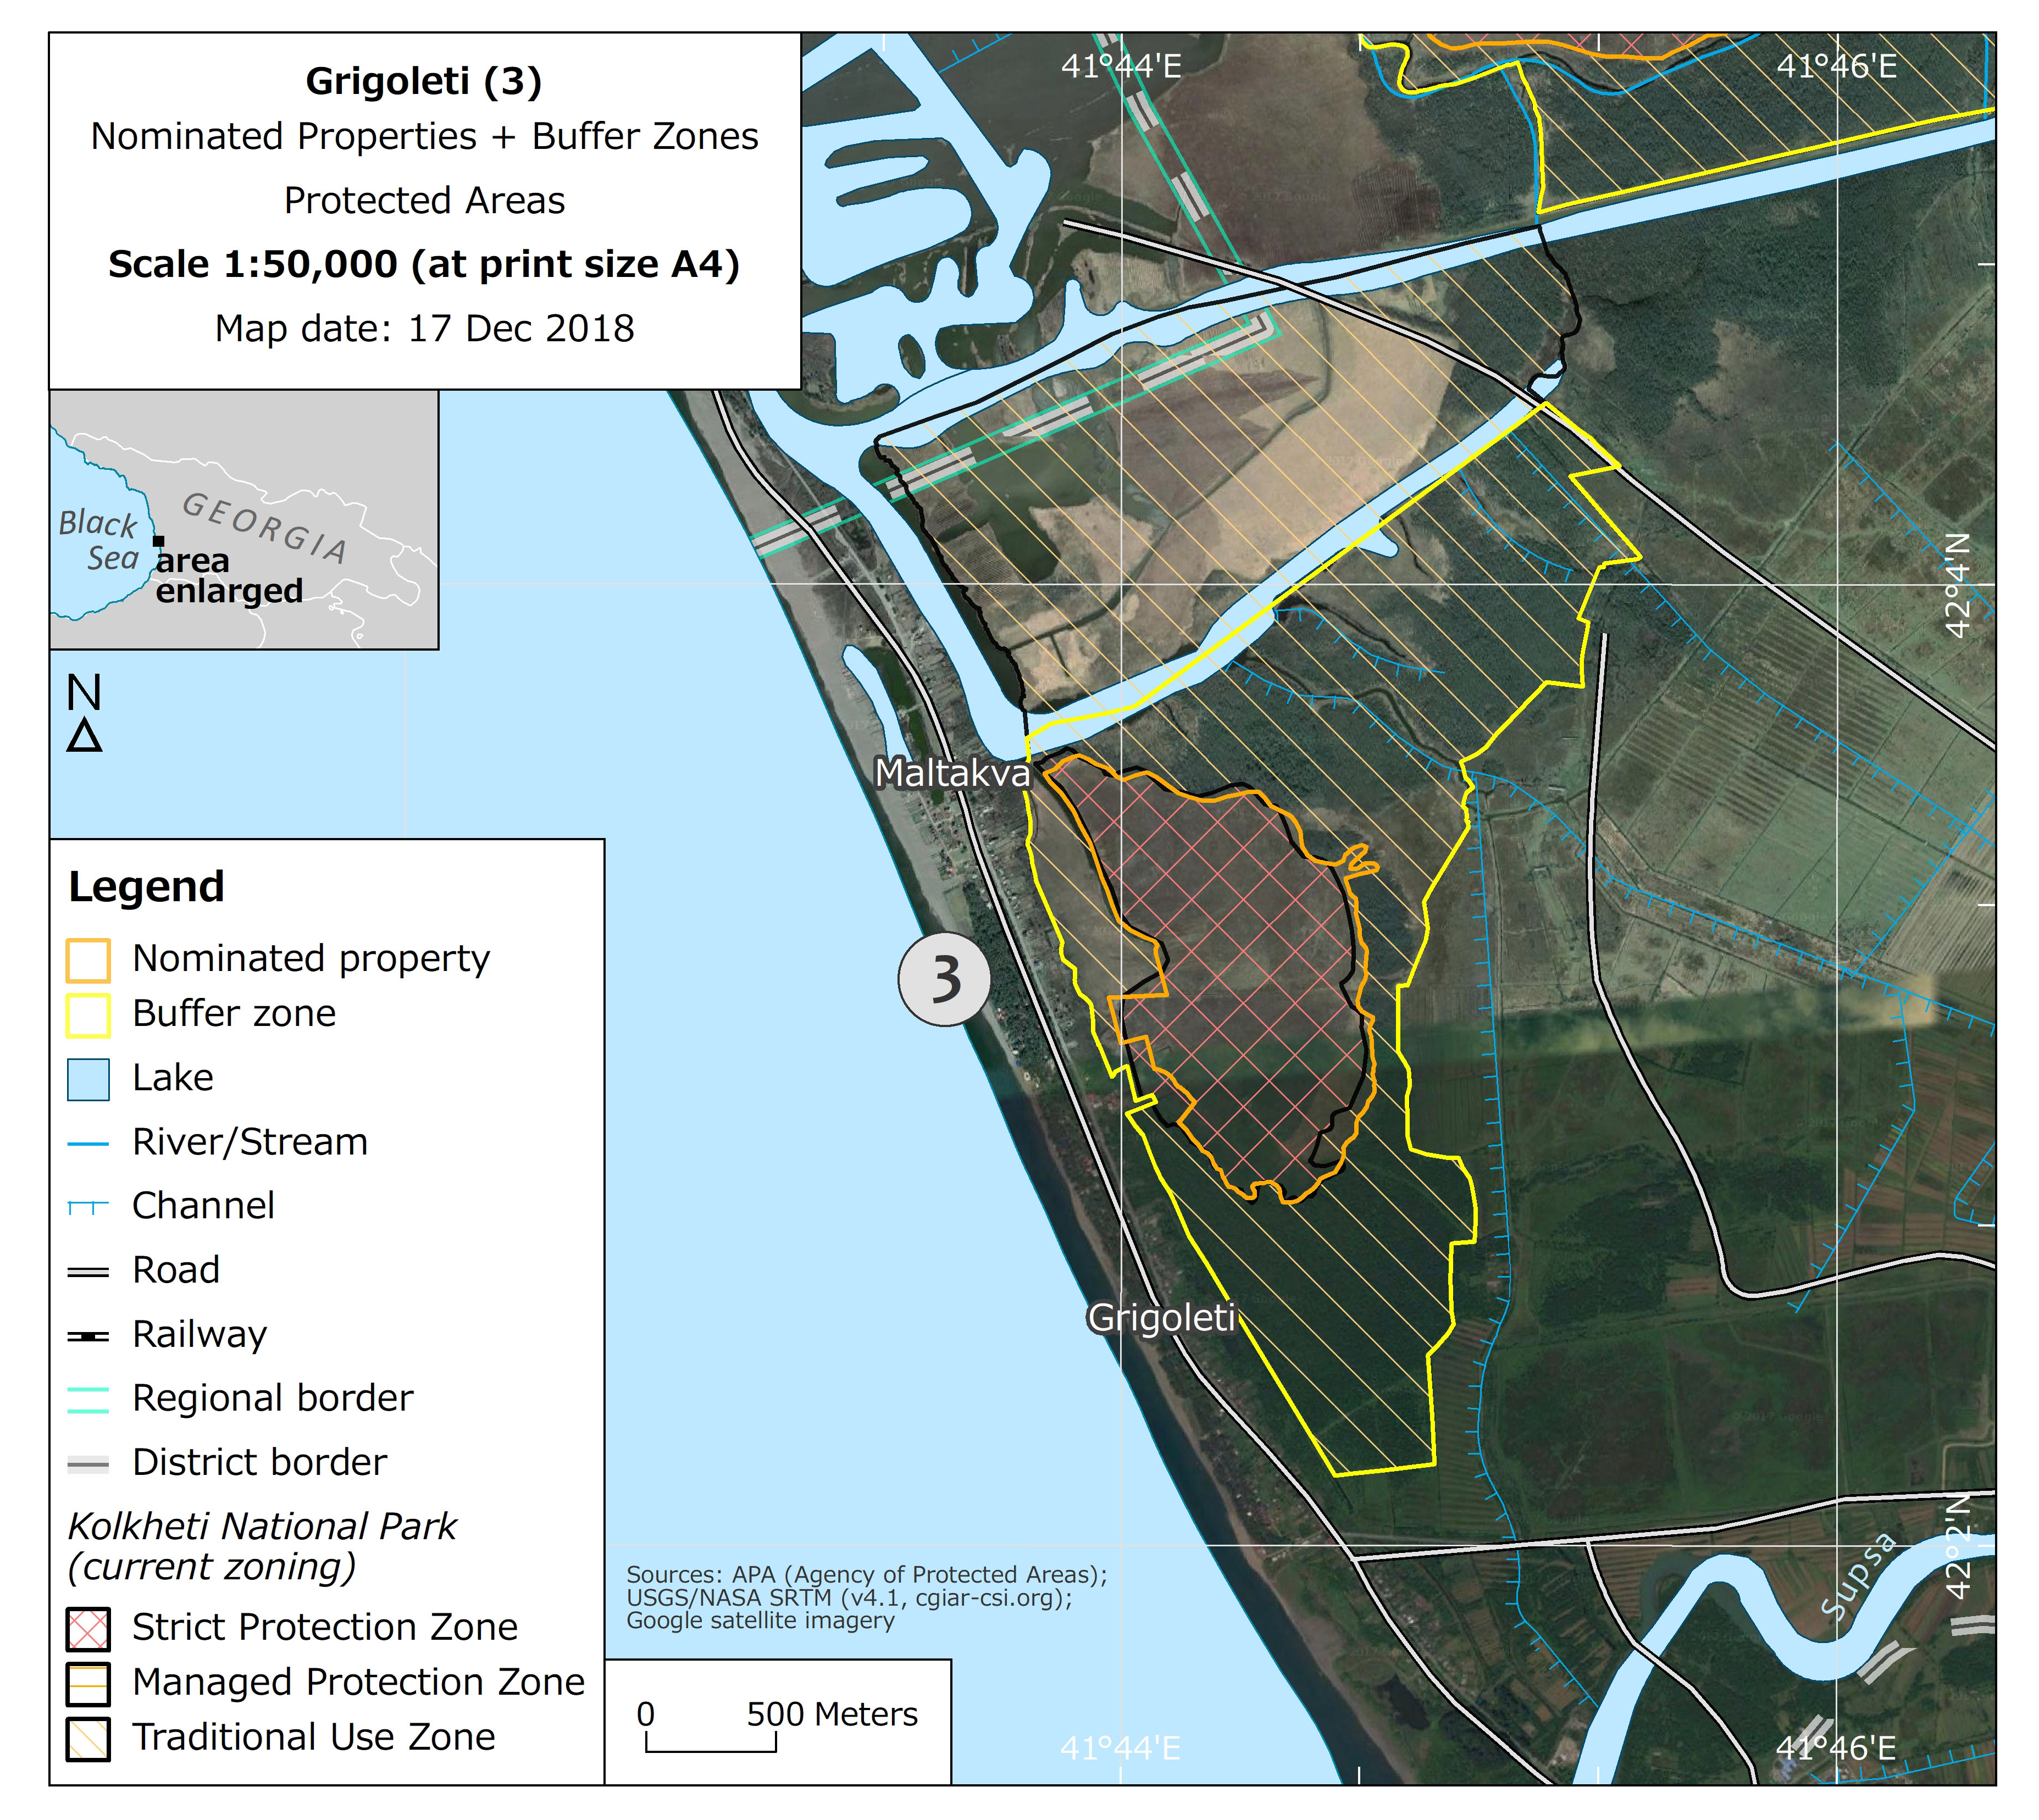 Map of the Grigoleti nominated component area and its buffer zone (No. 3) with boundaries and zoning of Kolkheti National Park